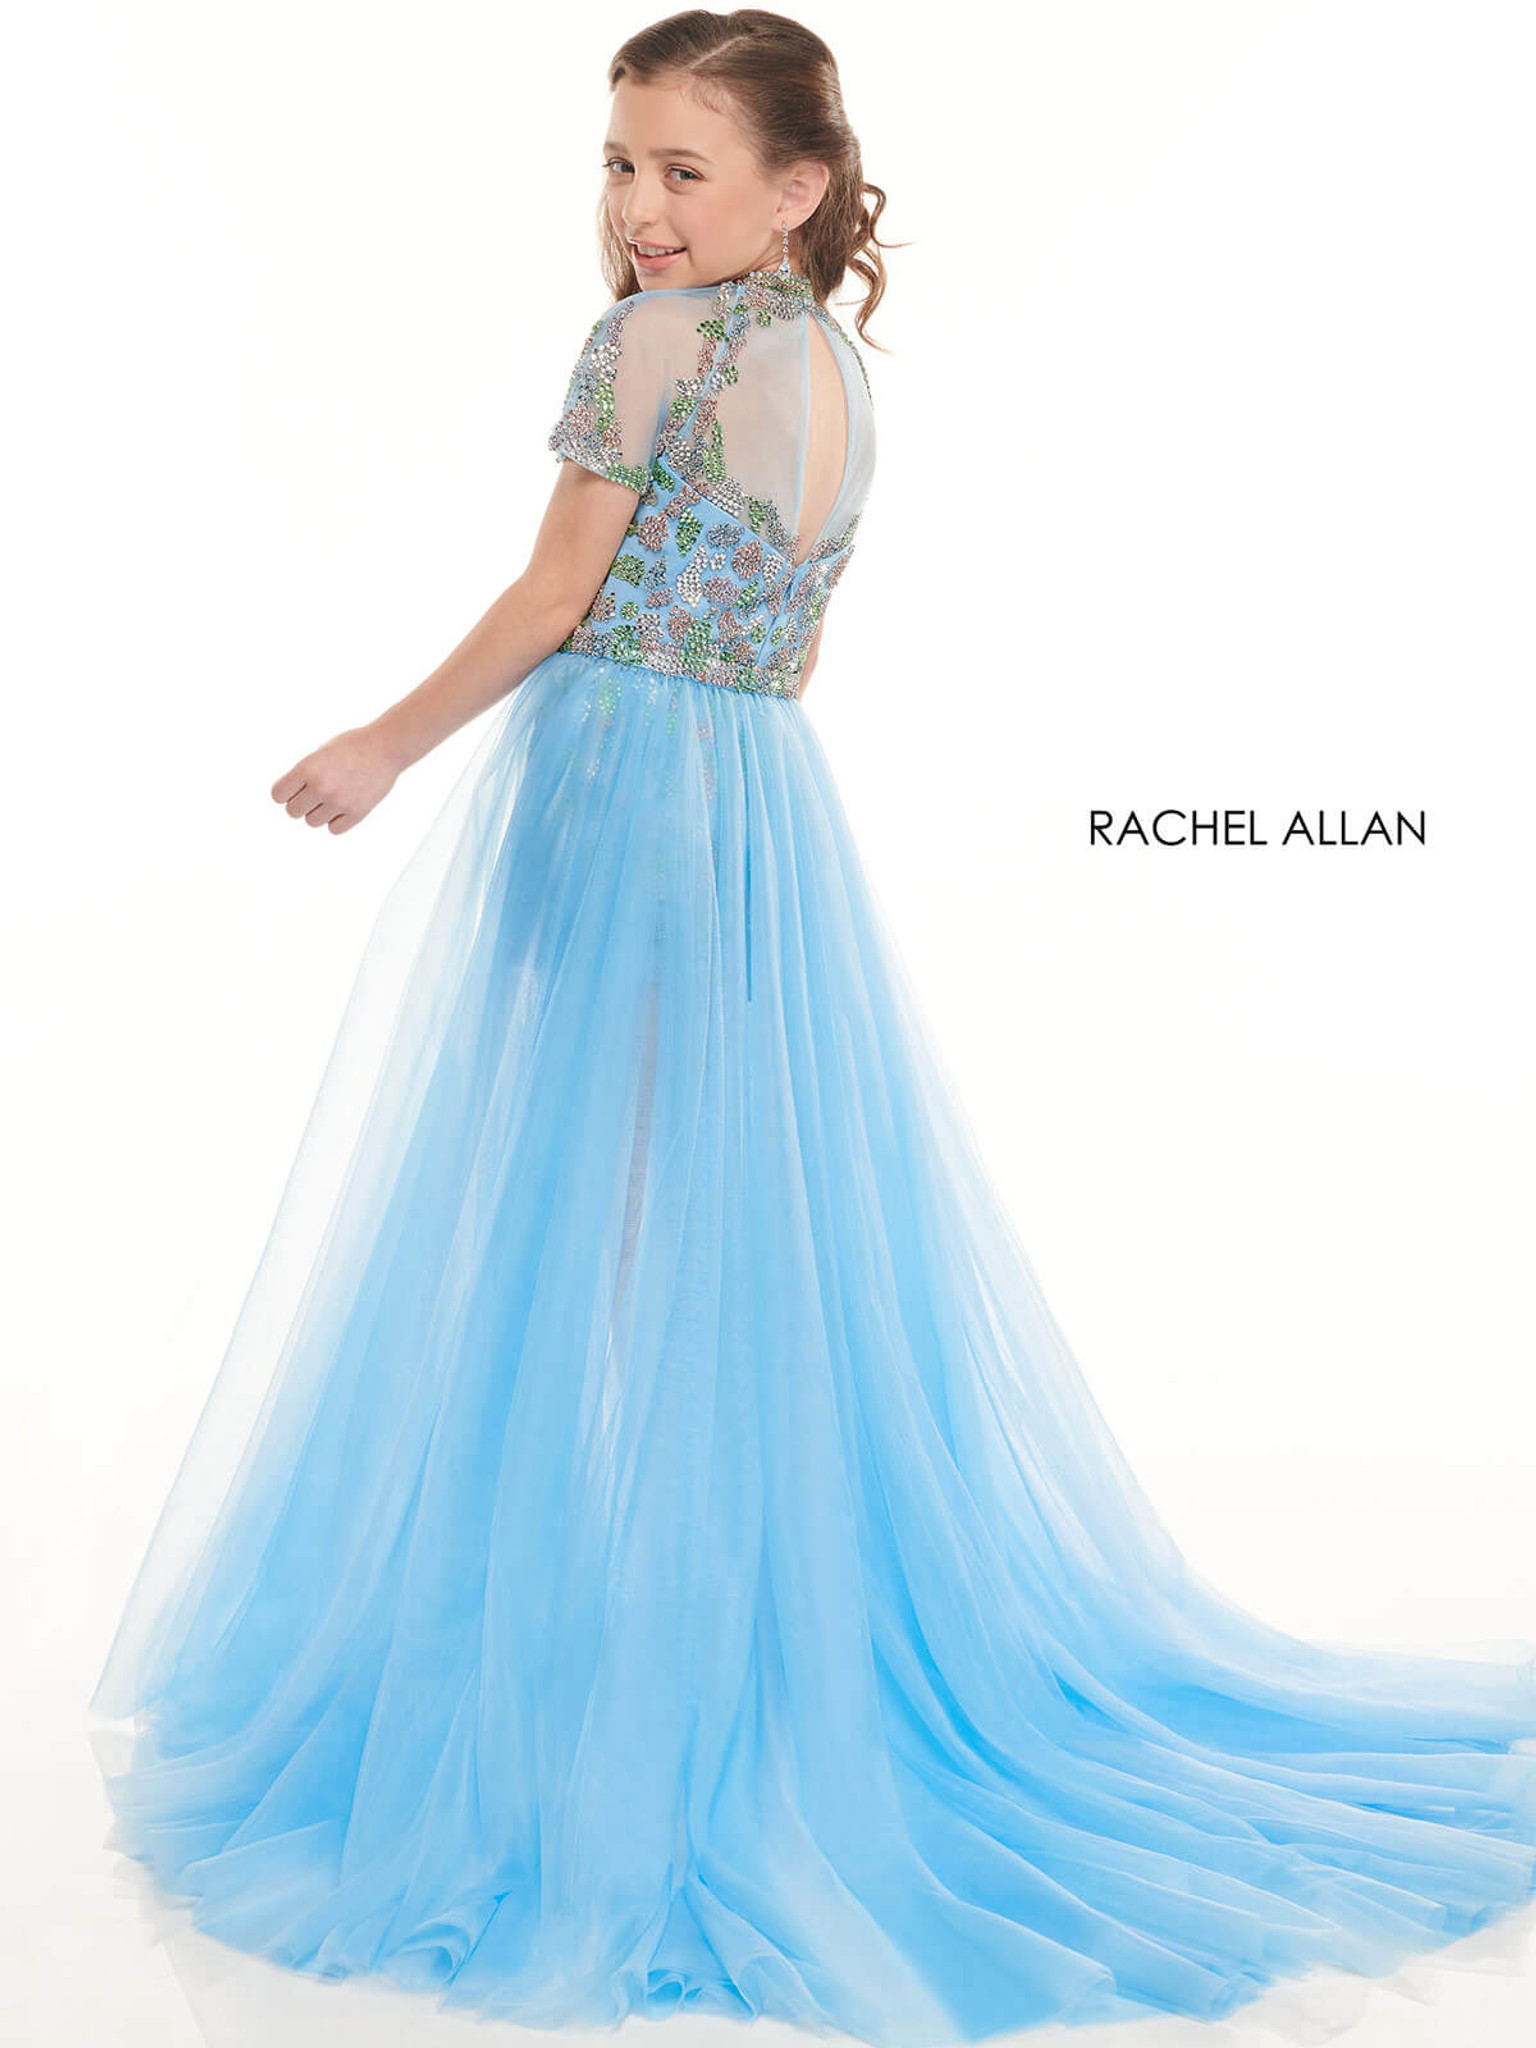 Romper Girls Pageant Dress Perfect Angels 10006